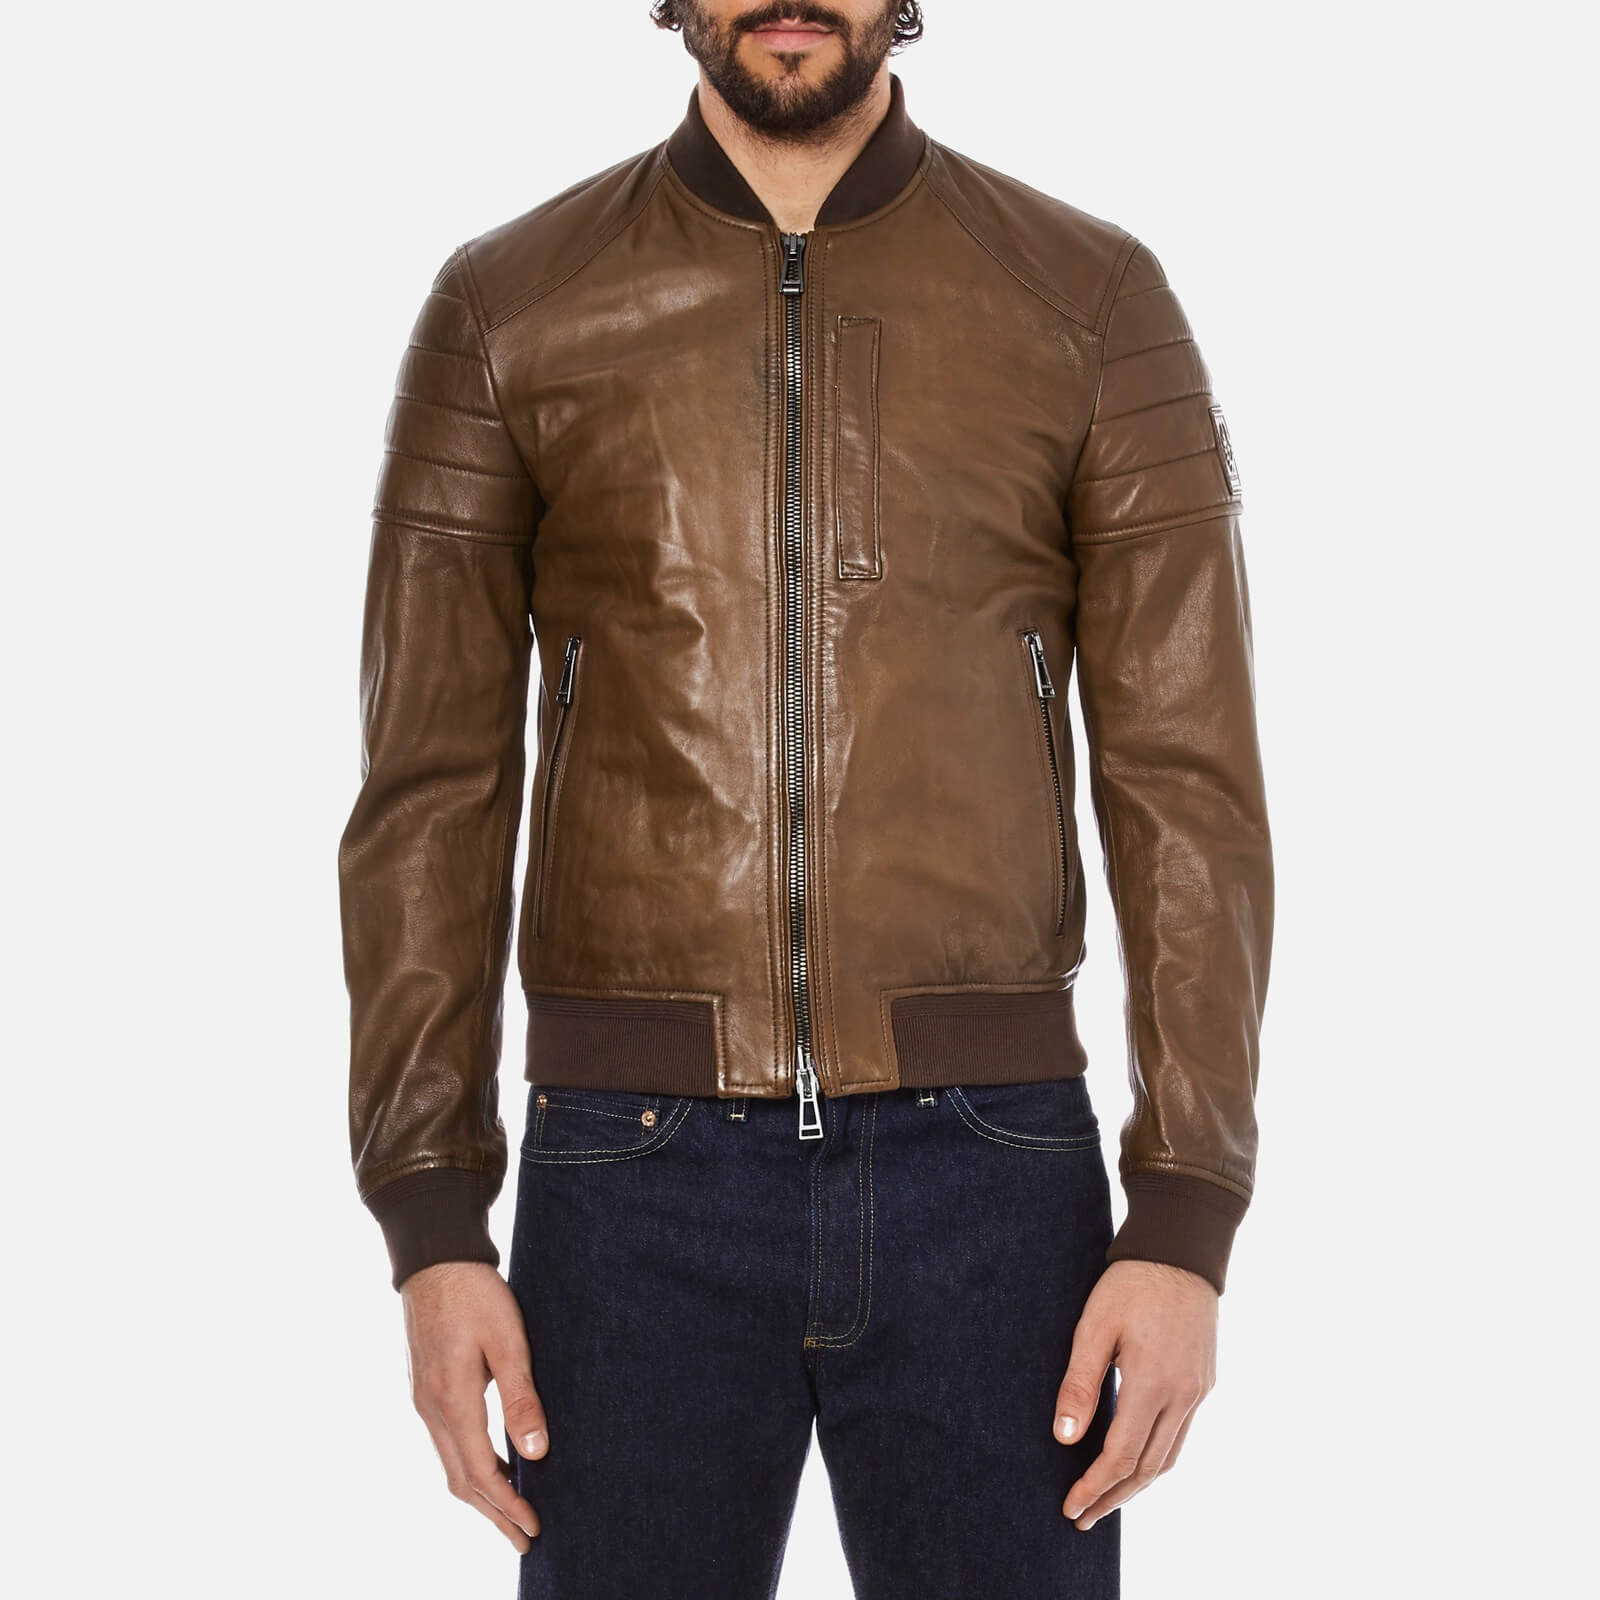 3aeff9f10a6 Belstaff Men's Stockdale Jacket - Oak Brown - Free UK Delivery over £50